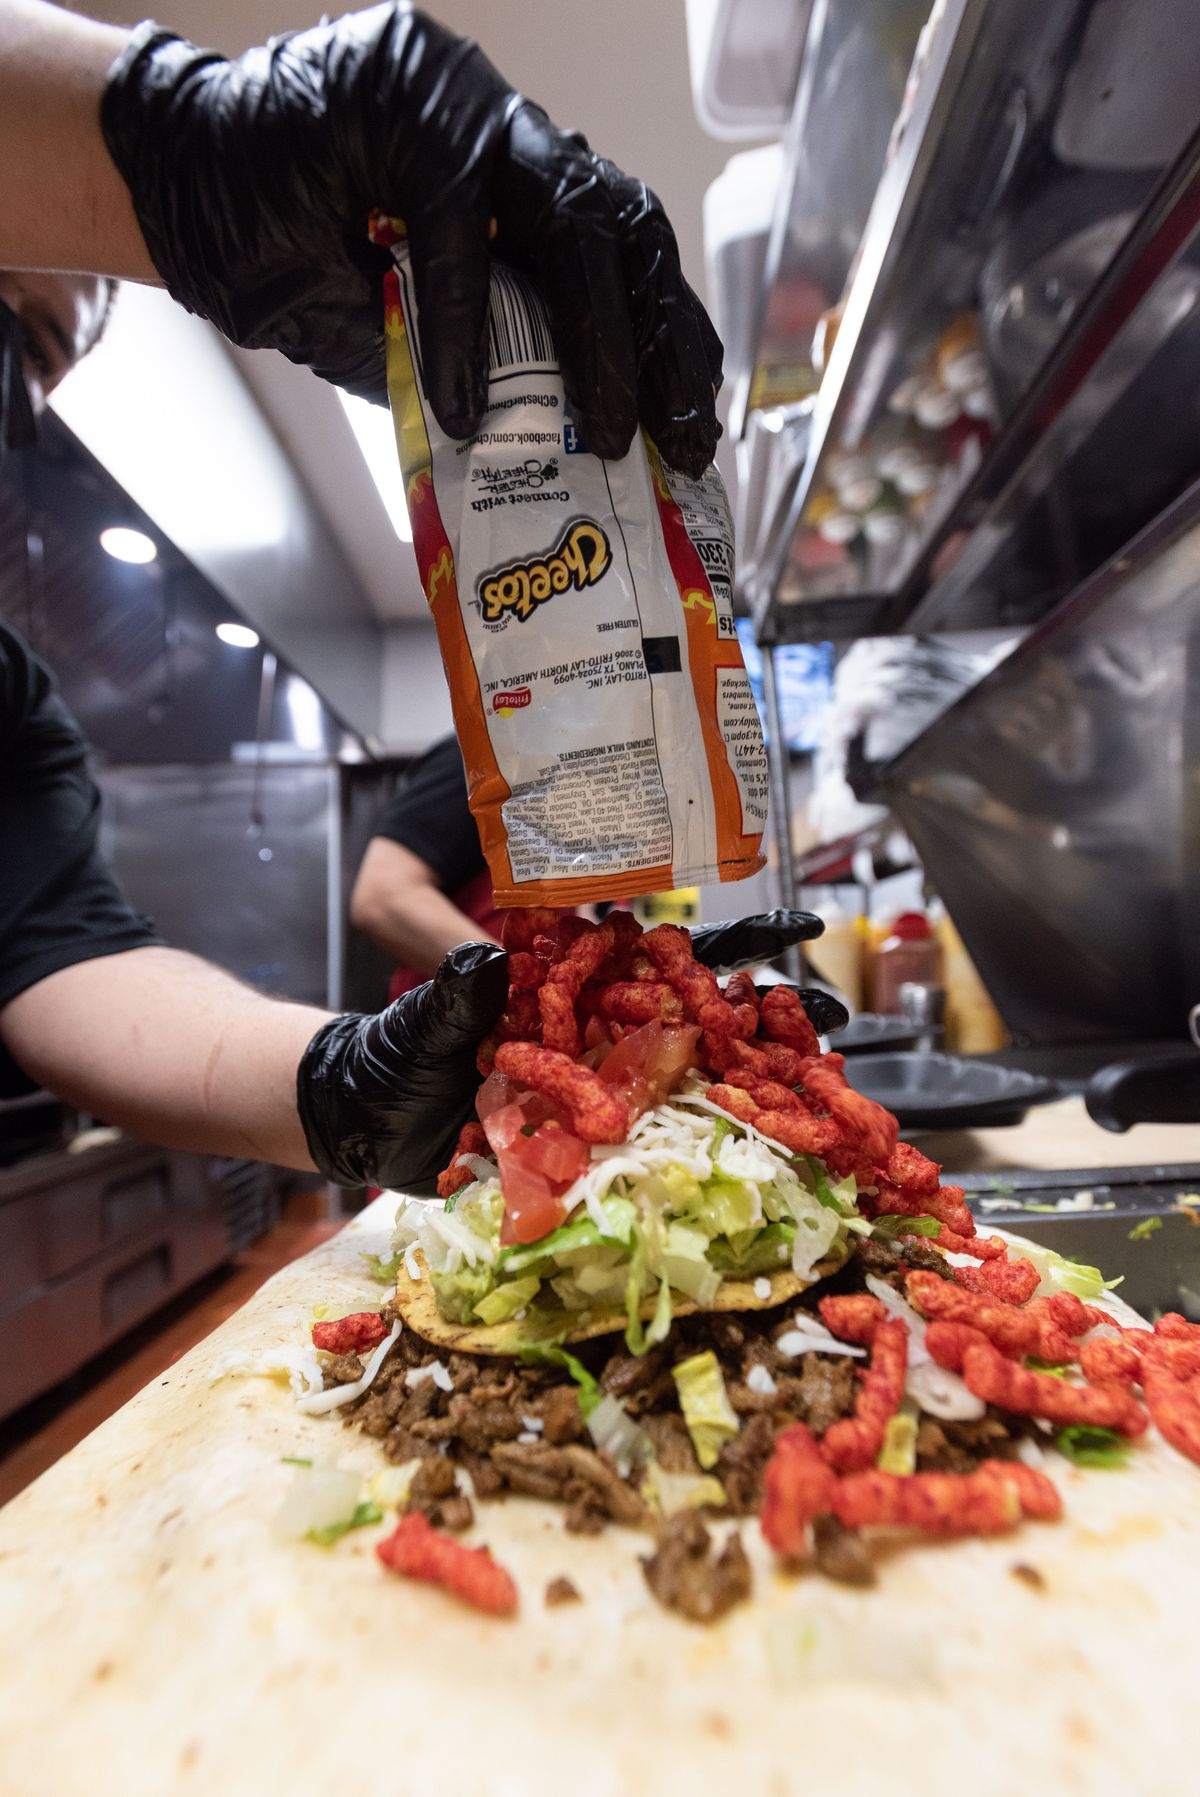 A worker drops Hot Cheetos on top of a burrito inside a restaurant.